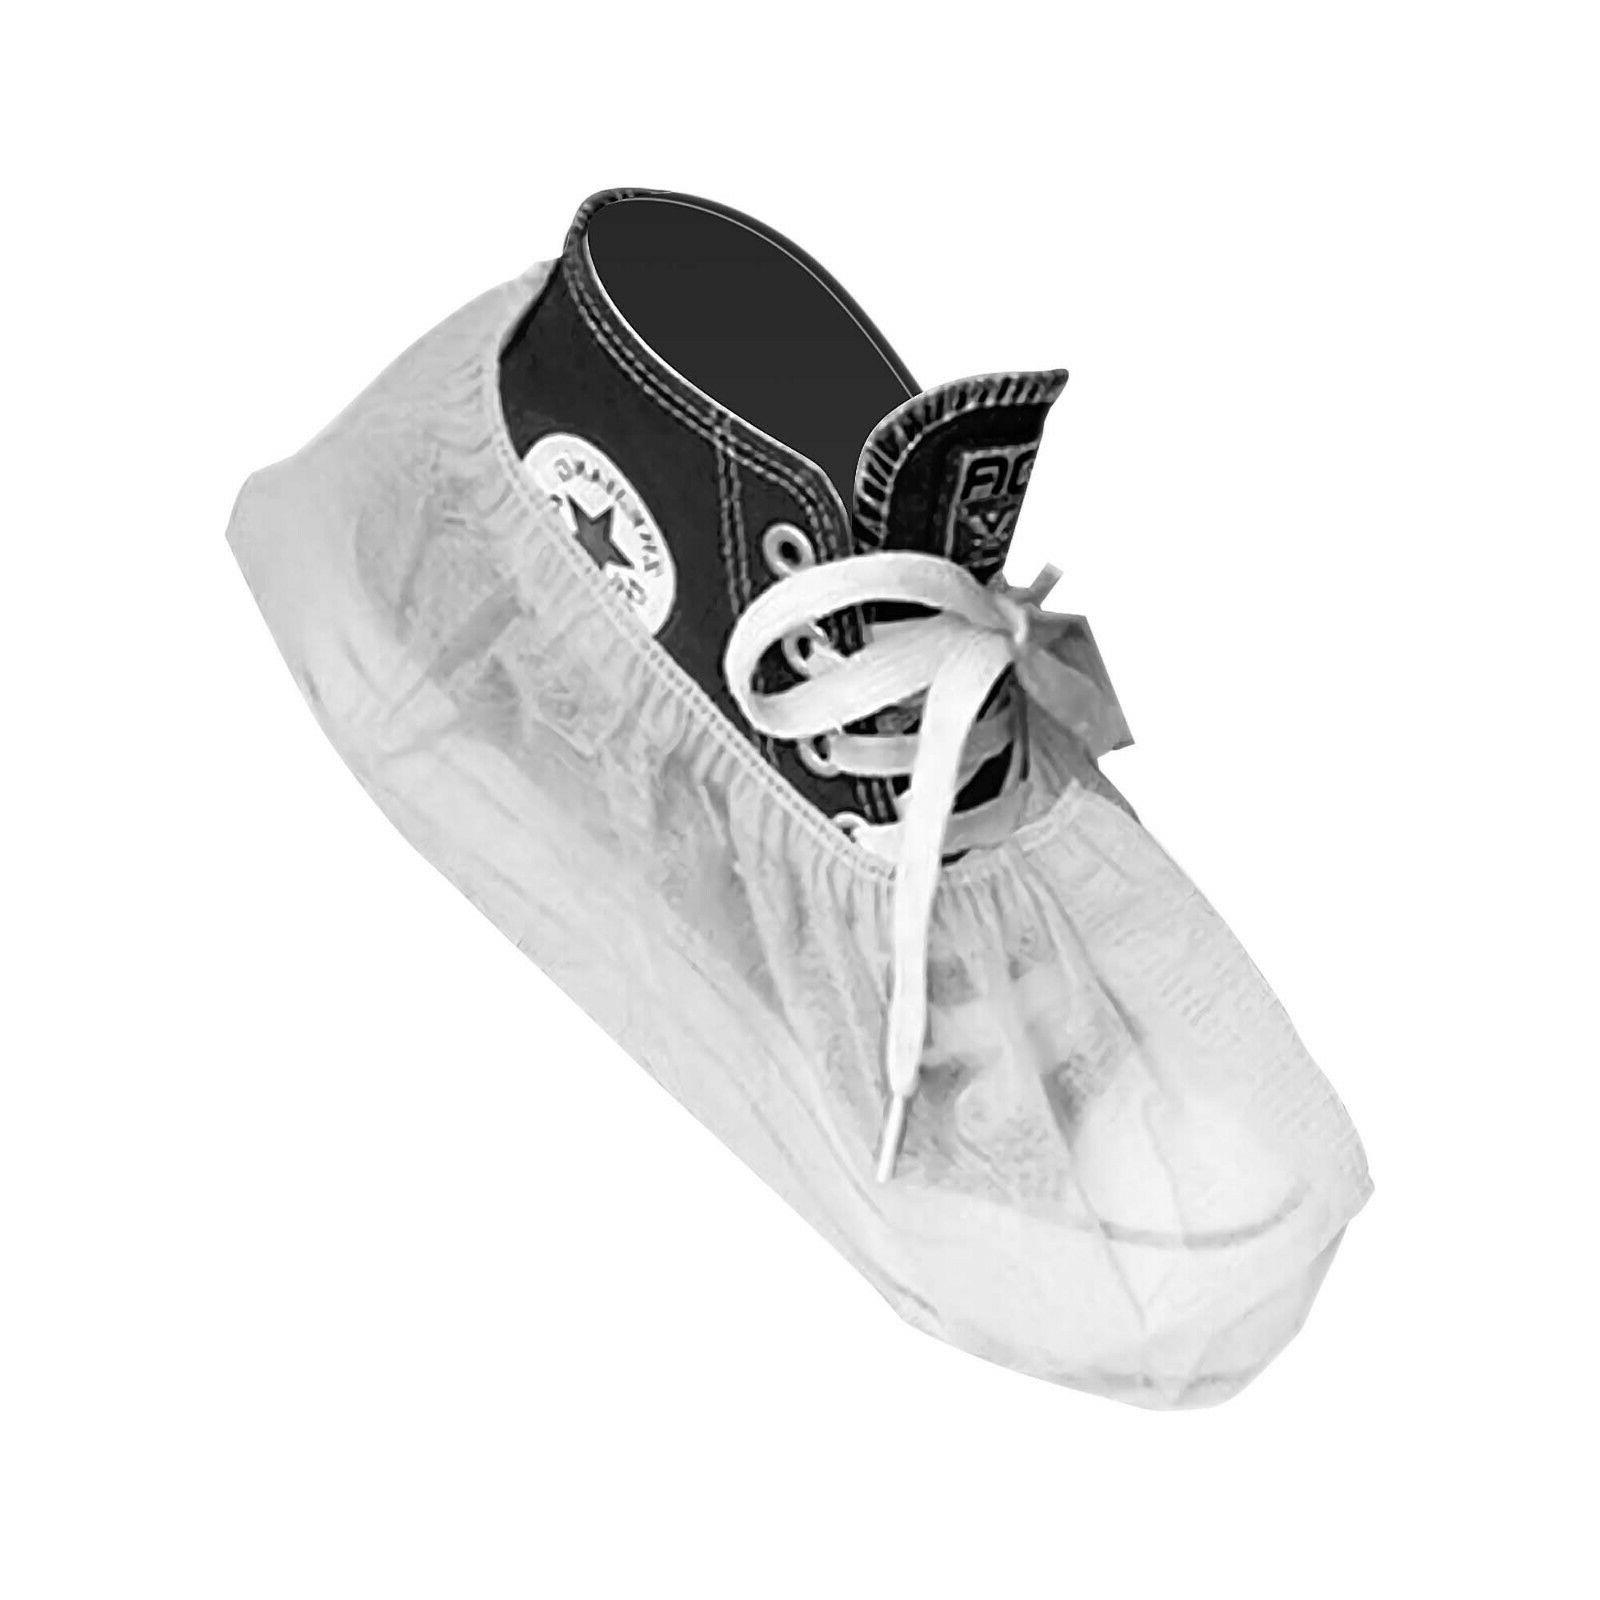 heavy duty poly coated ppsb shoe covers